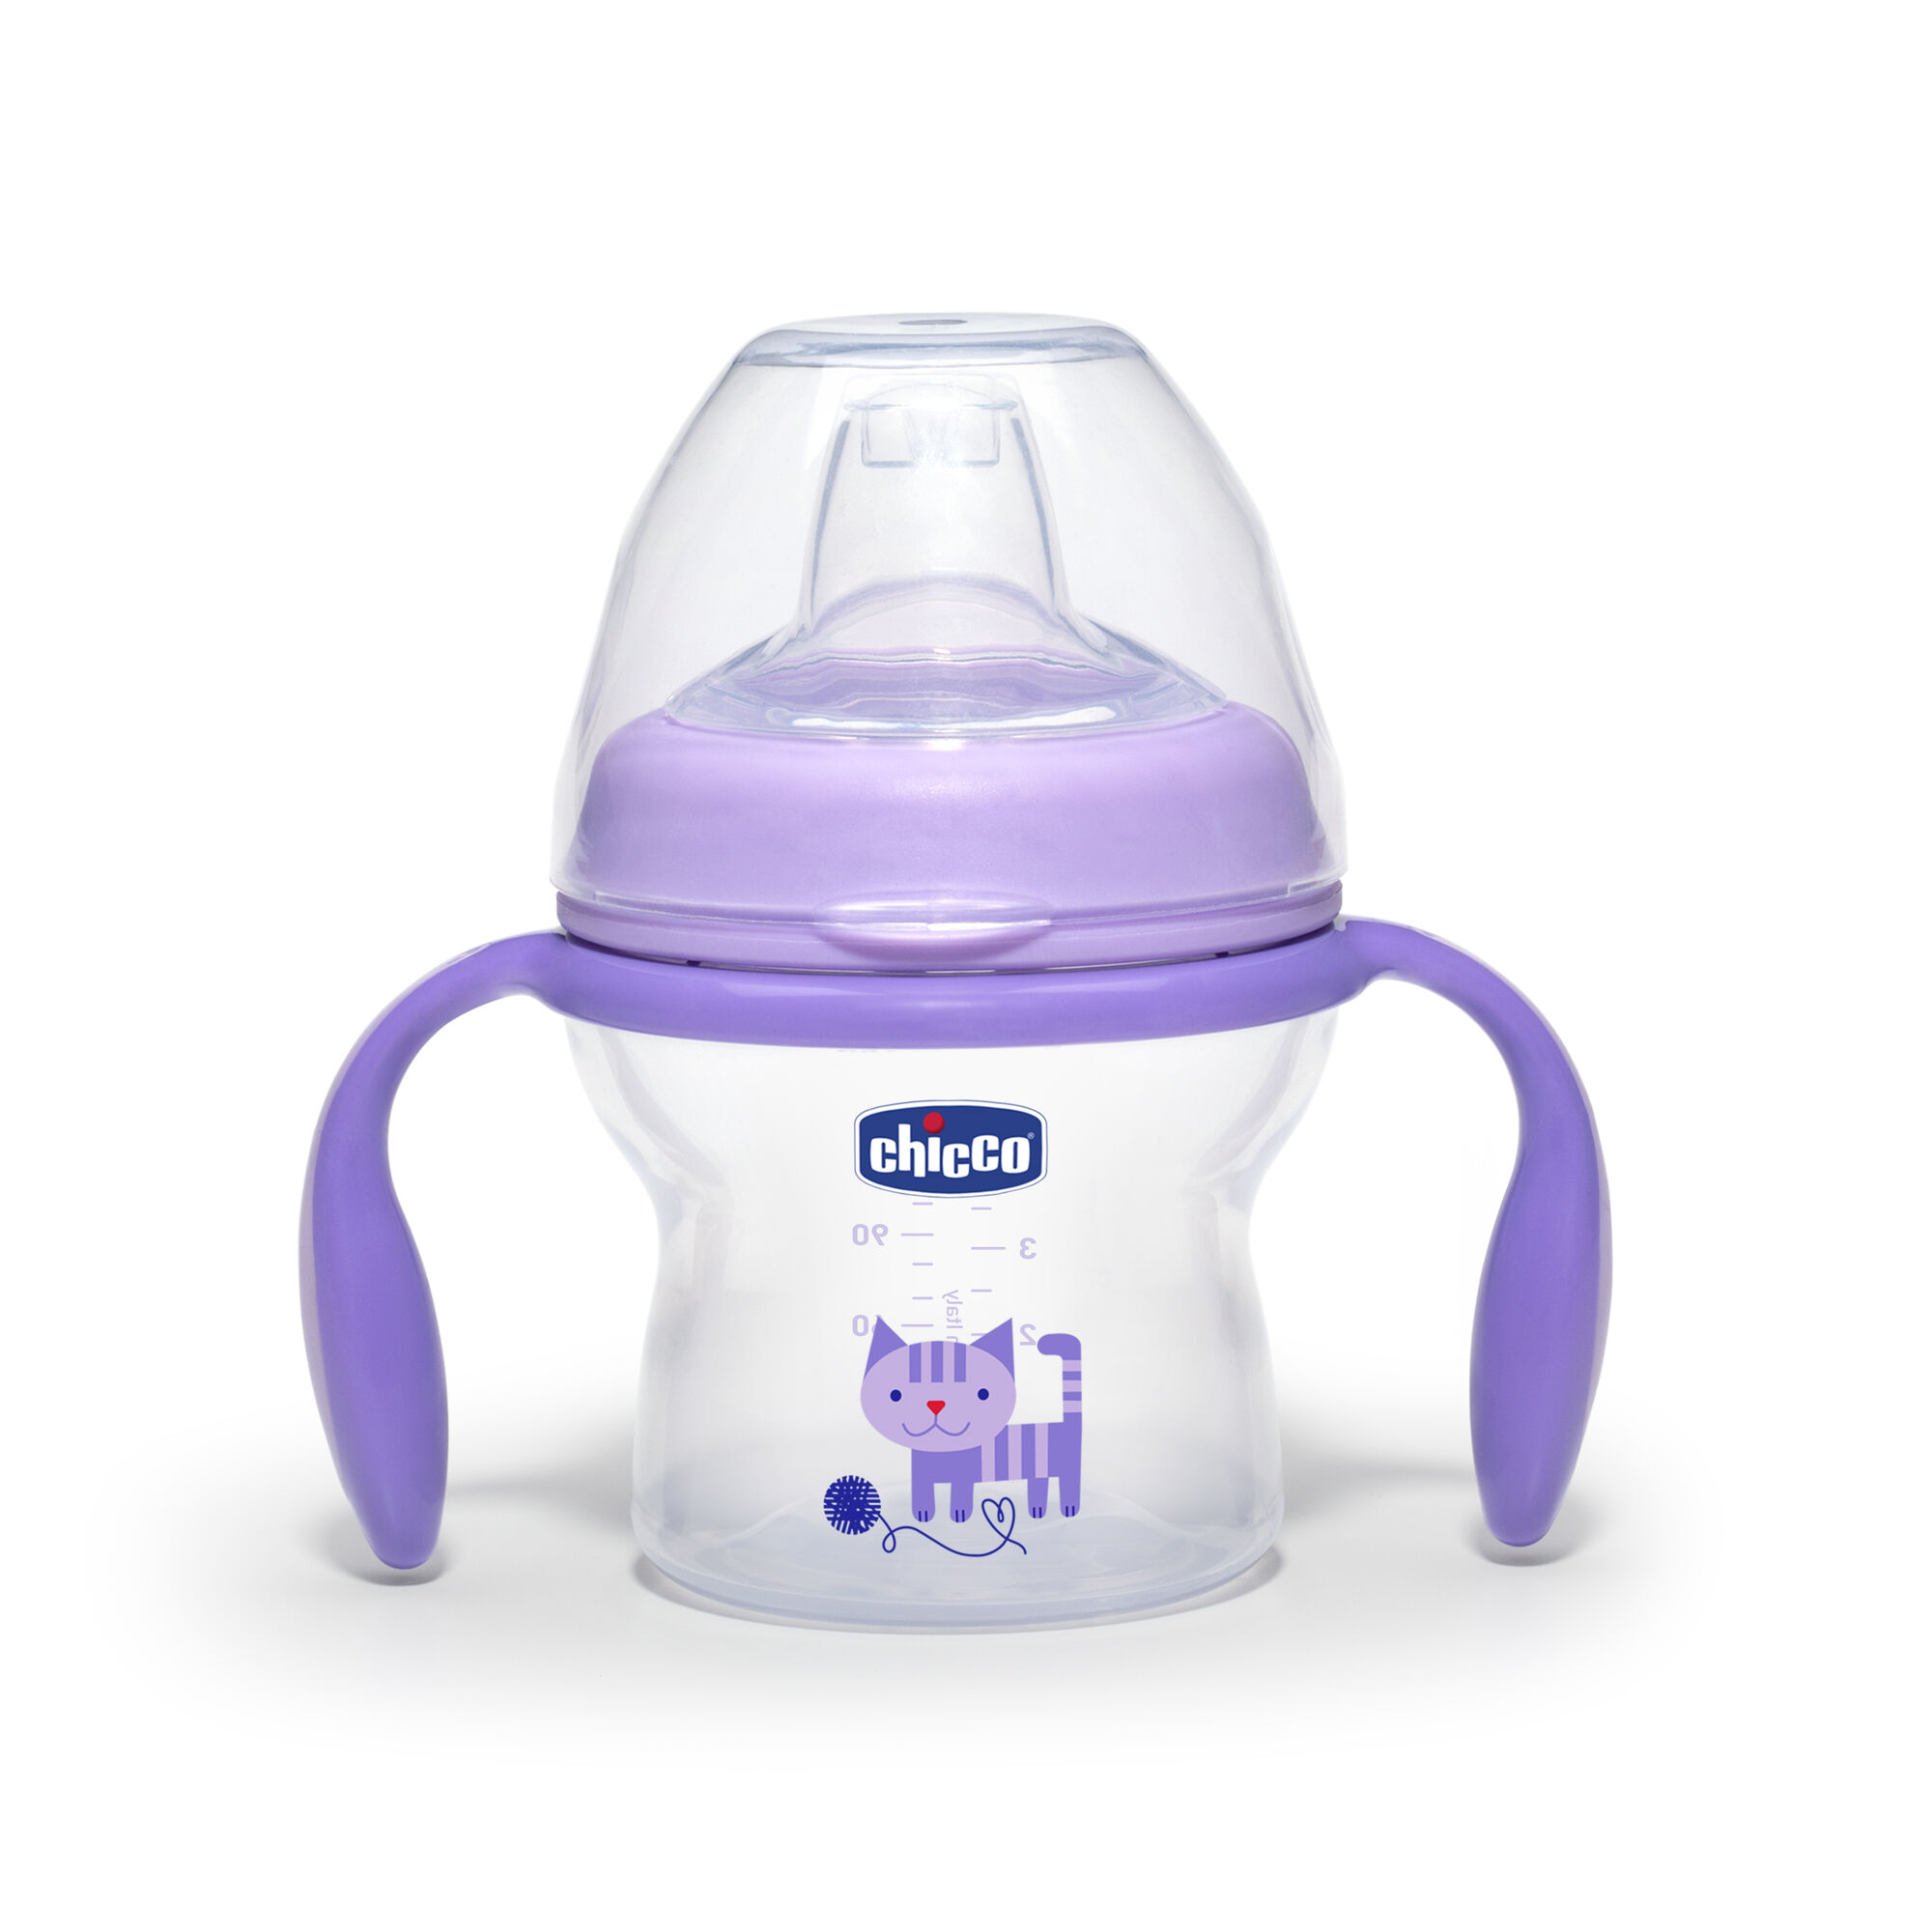 Chicco 5oz Transition Cup 6m Kitten